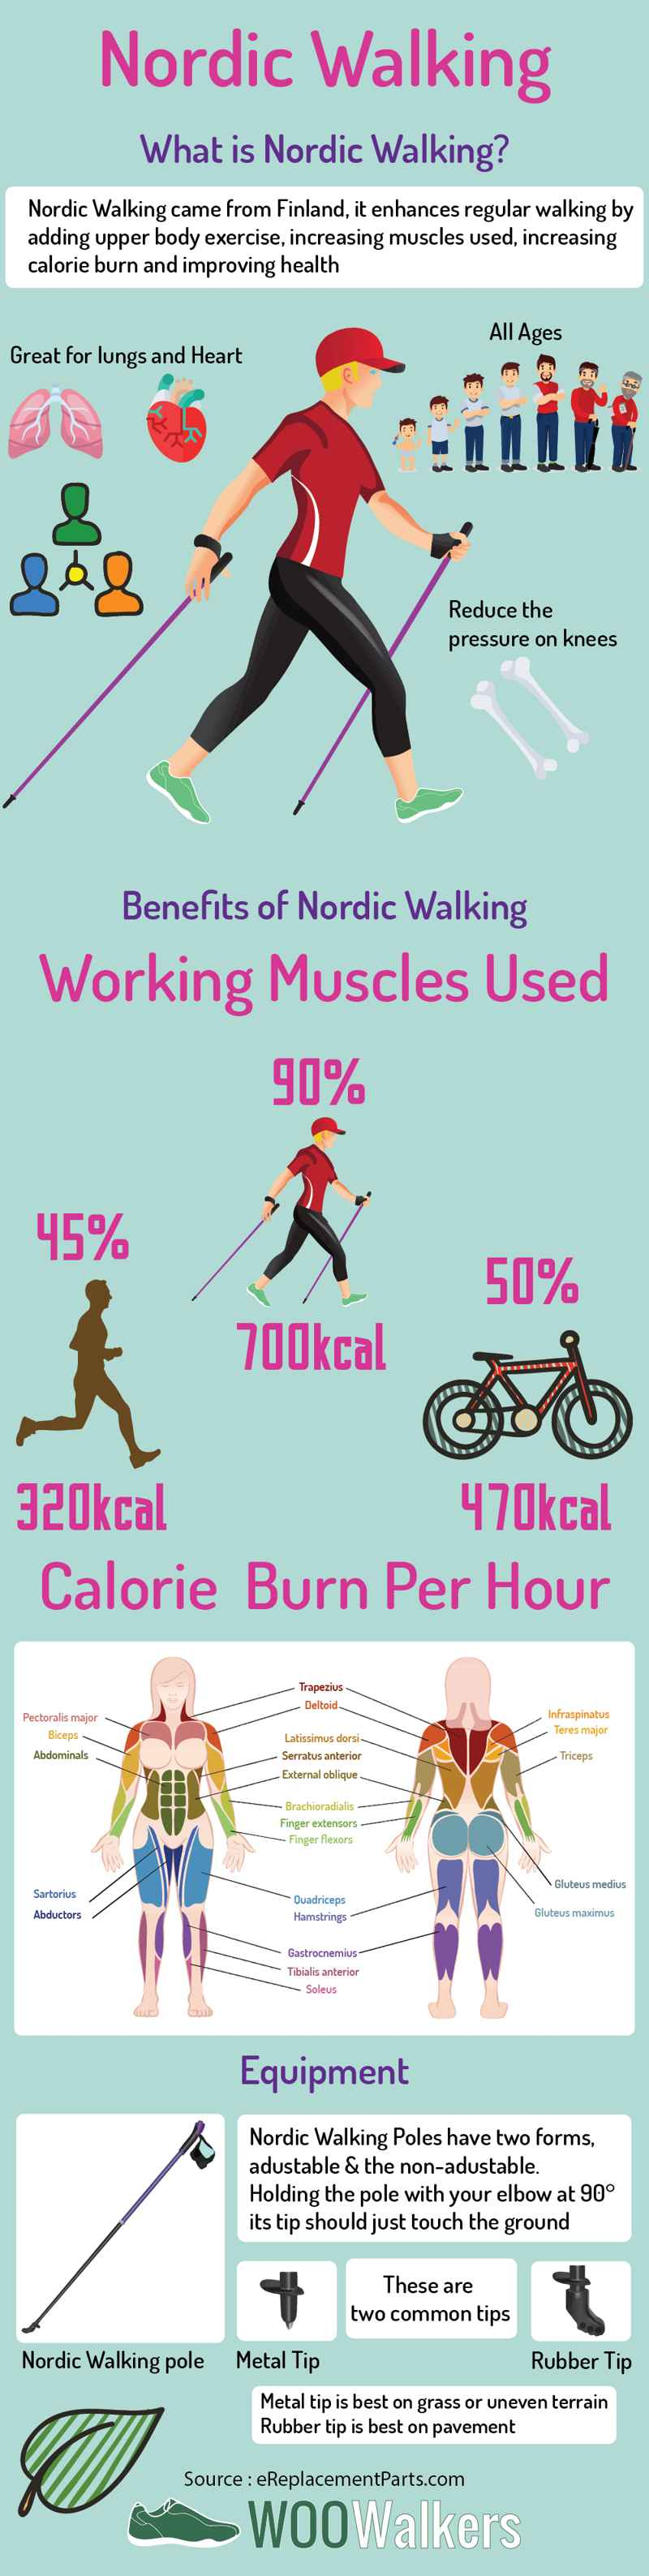 Walking for Fitness with Nordic Walking